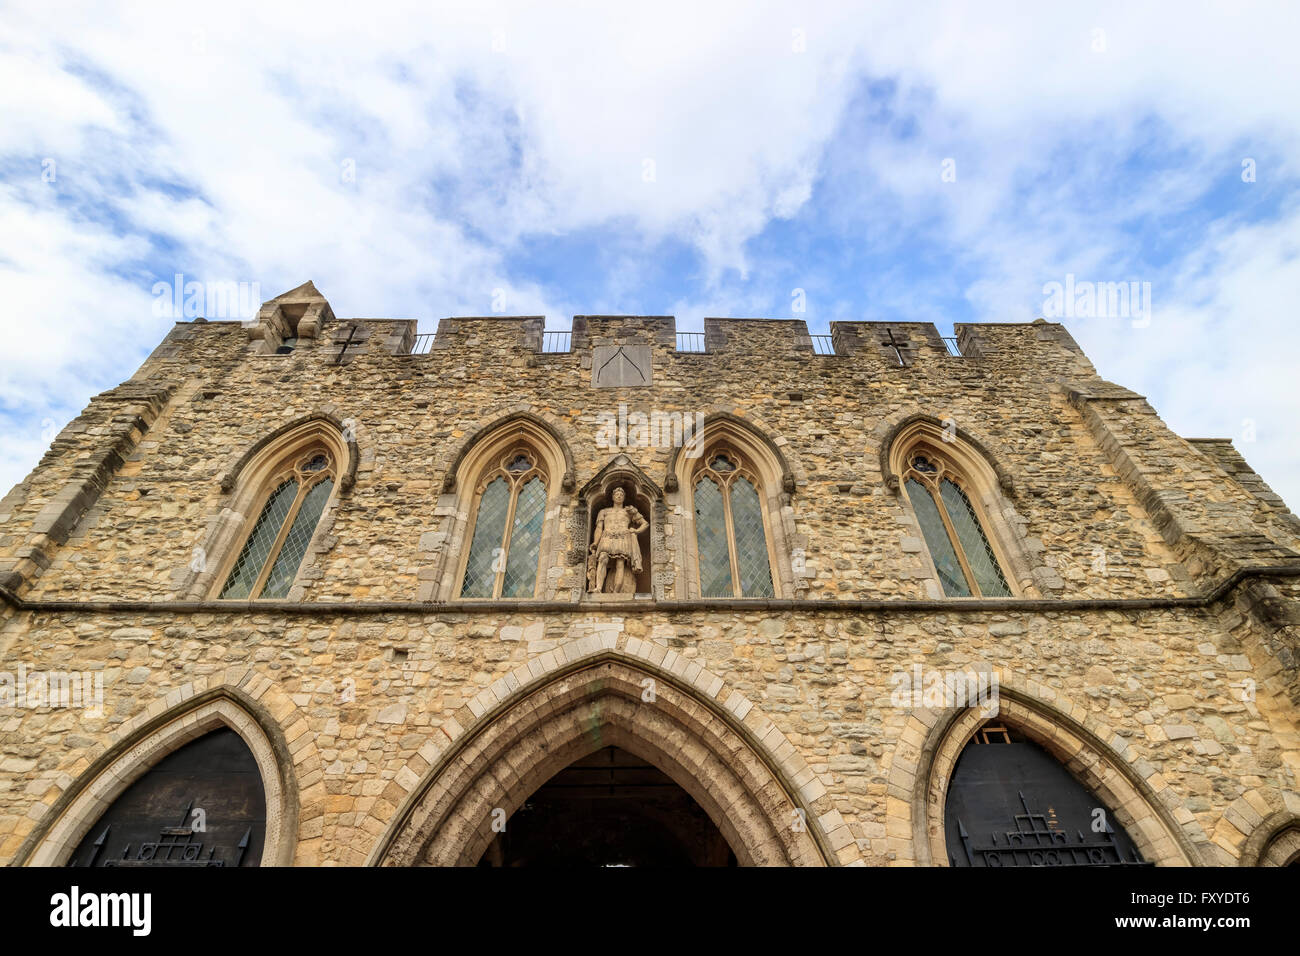 The famous historical building - Bargate at Southampton - Stock Image